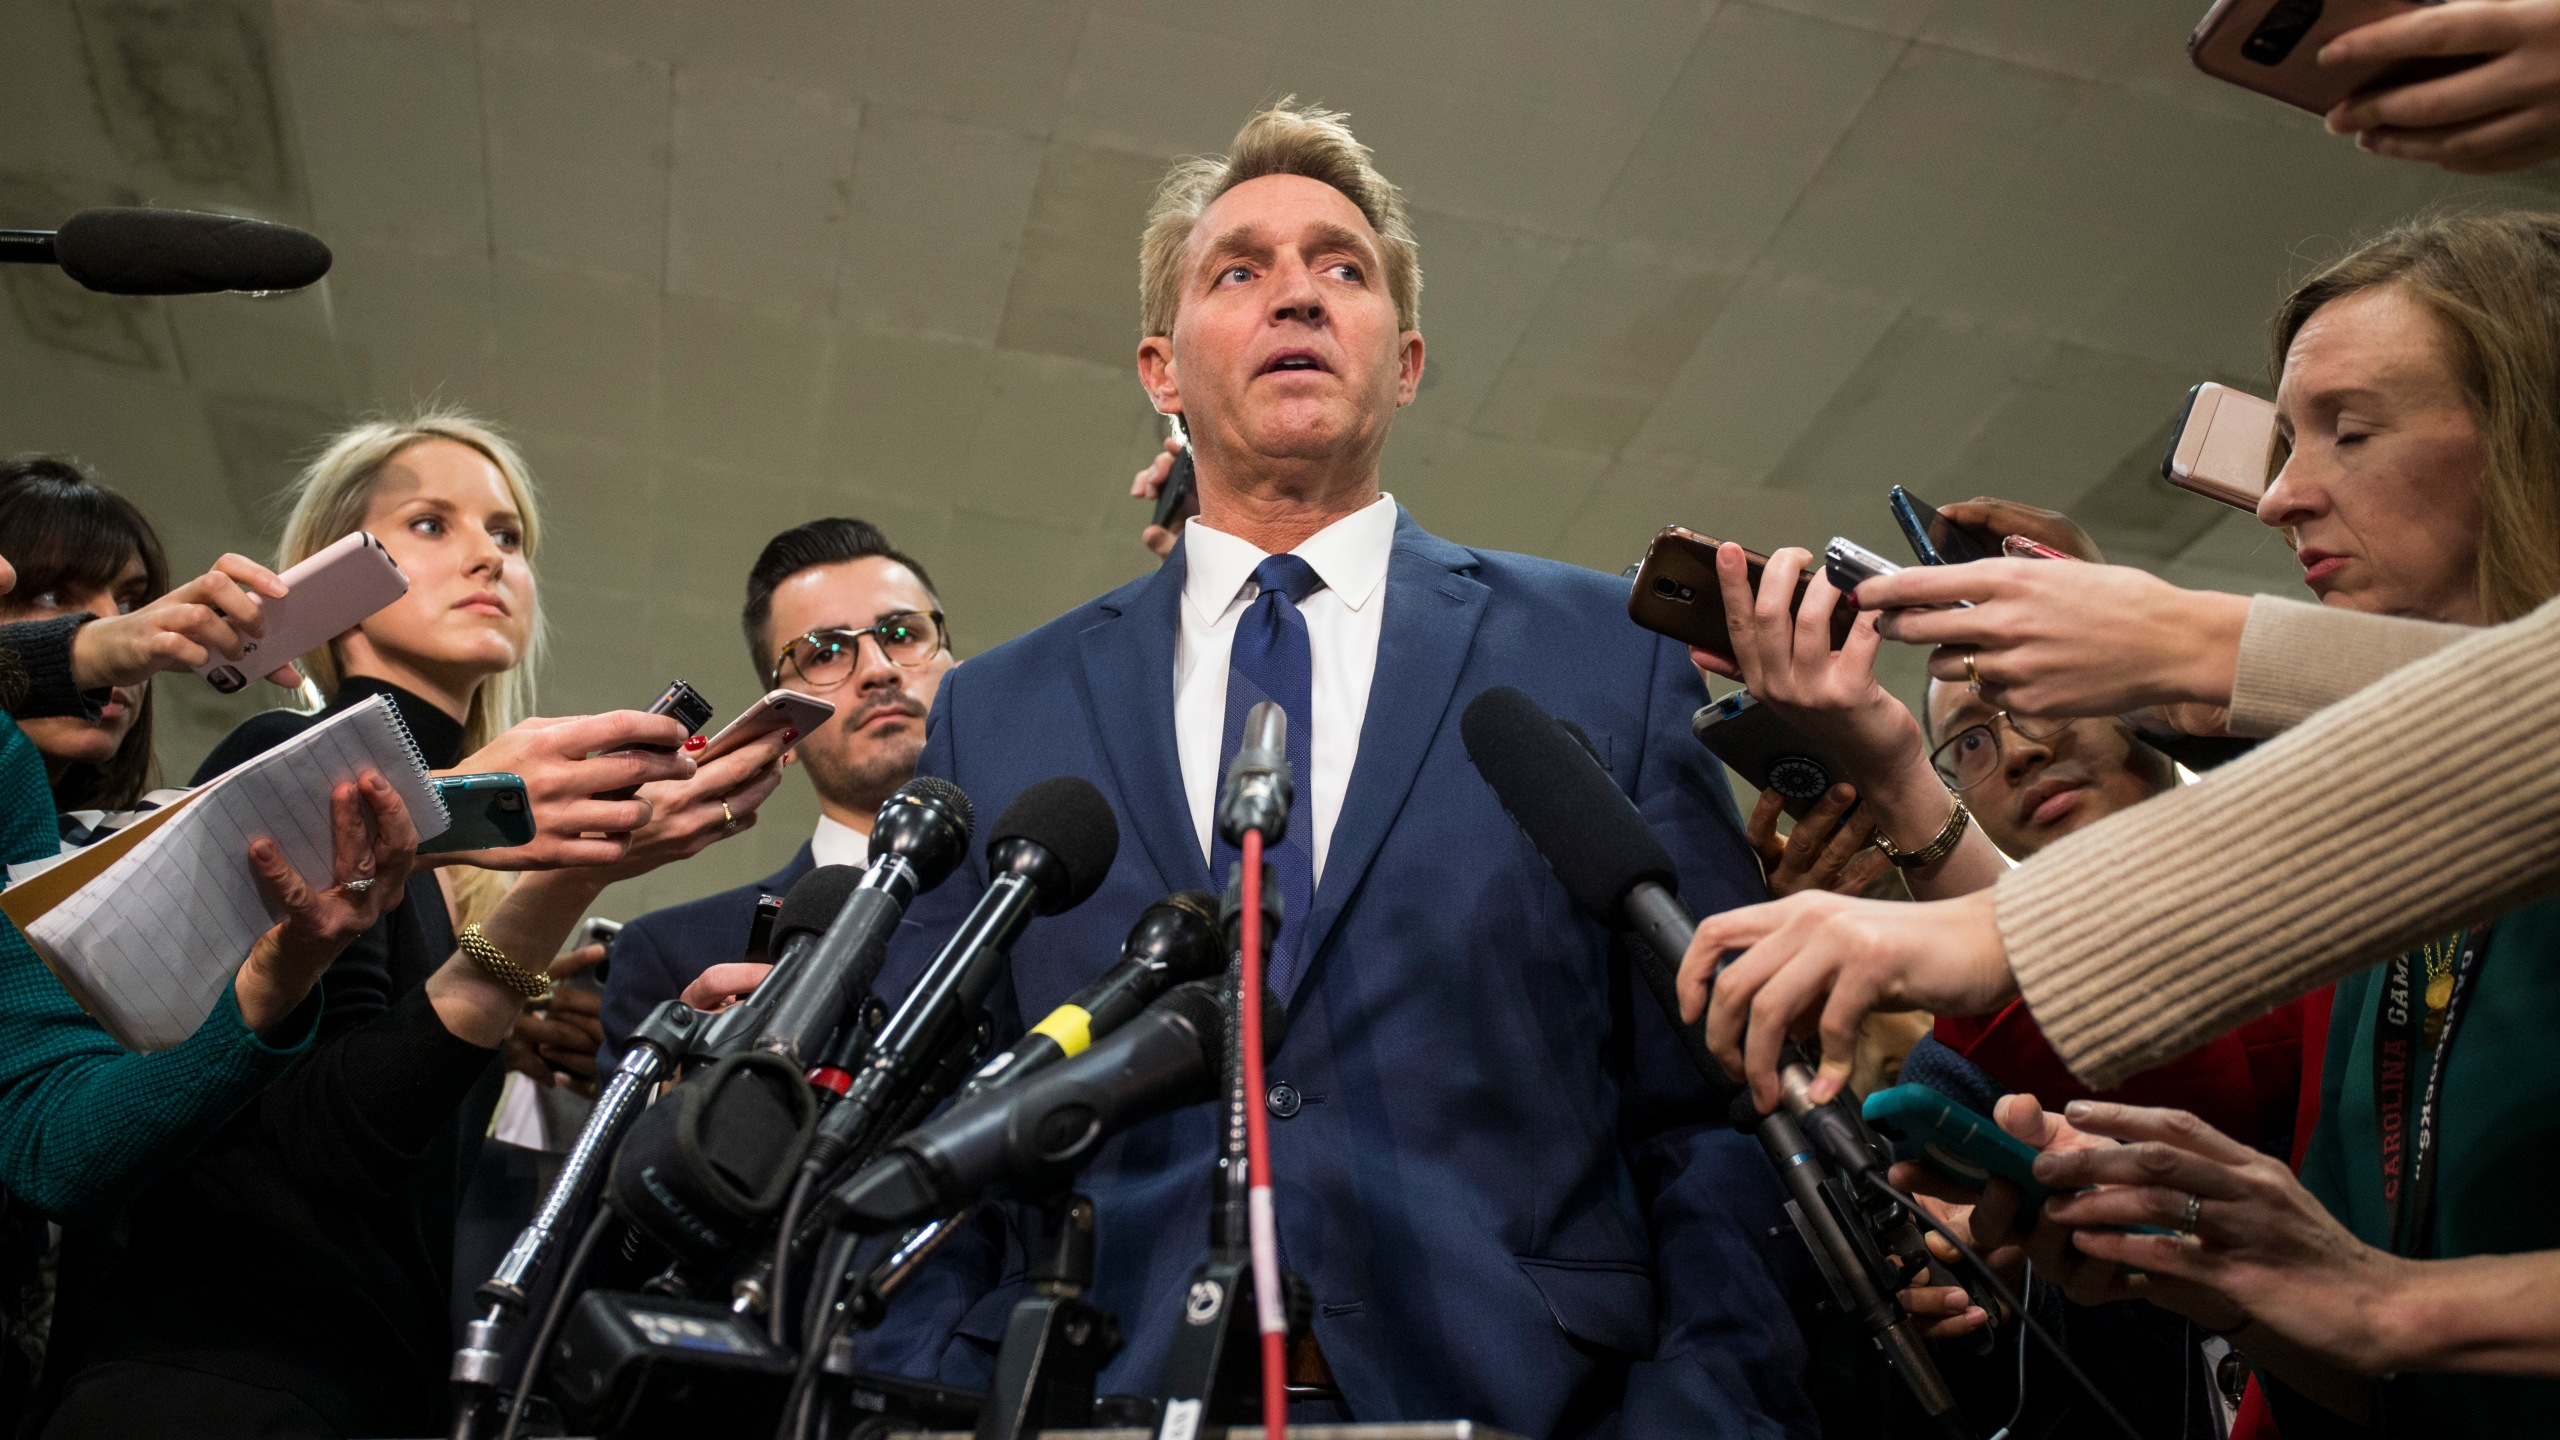 Sen. Jeff Flake (R-AZ) speaks to the press after receiving a briefing from U.S. Secretary of Defense Jim Mattis and U.S. Secretary of State Mike Pompeo on developments in Saudi Arabia on Nov. 28, 2018. (Credit: Zach Gibson/Getty Images)